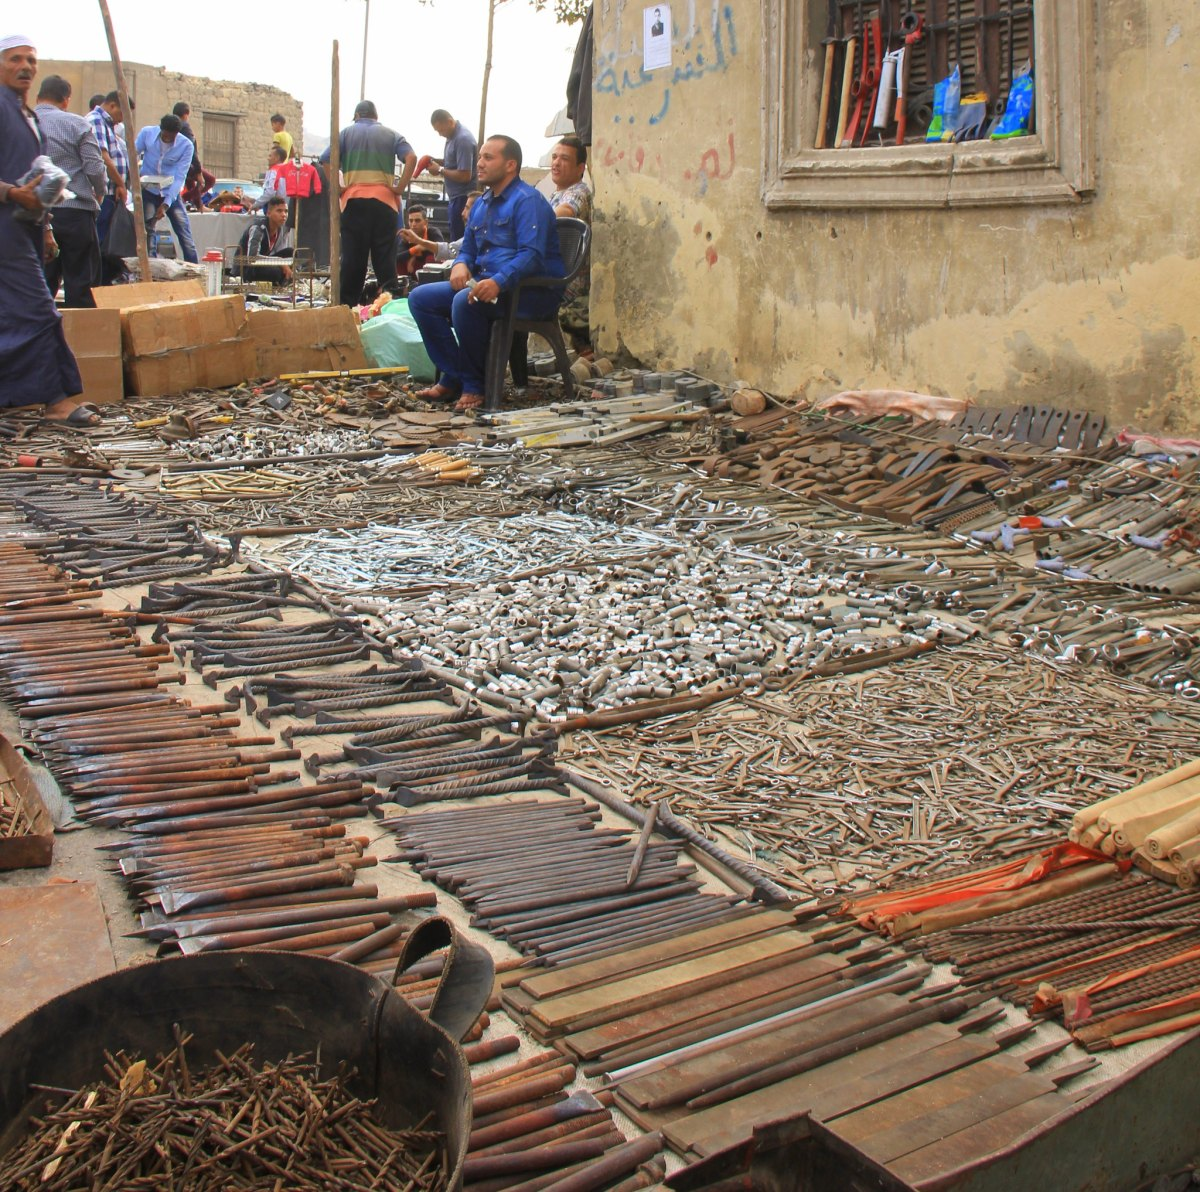 Souq al Goma is like a huge thrift store